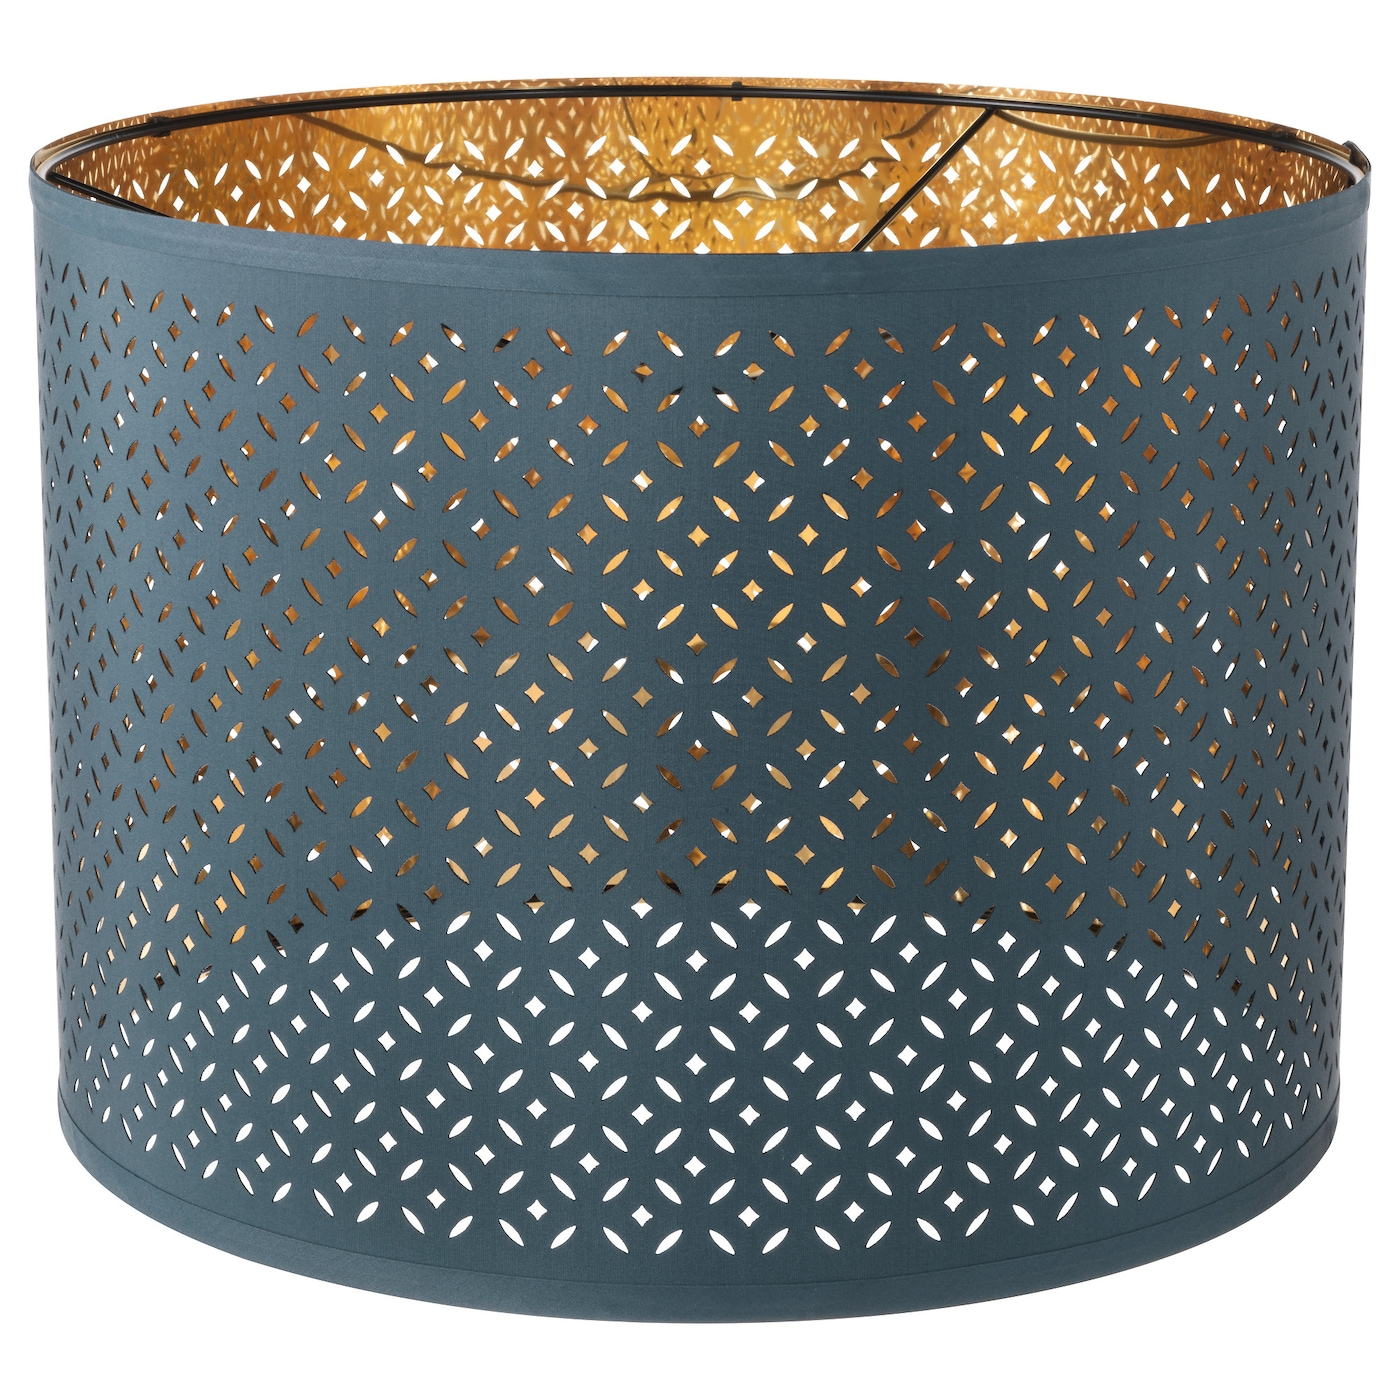 nym lamp shade blue brass colour 44 cm ikea. Black Bedroom Furniture Sets. Home Design Ideas